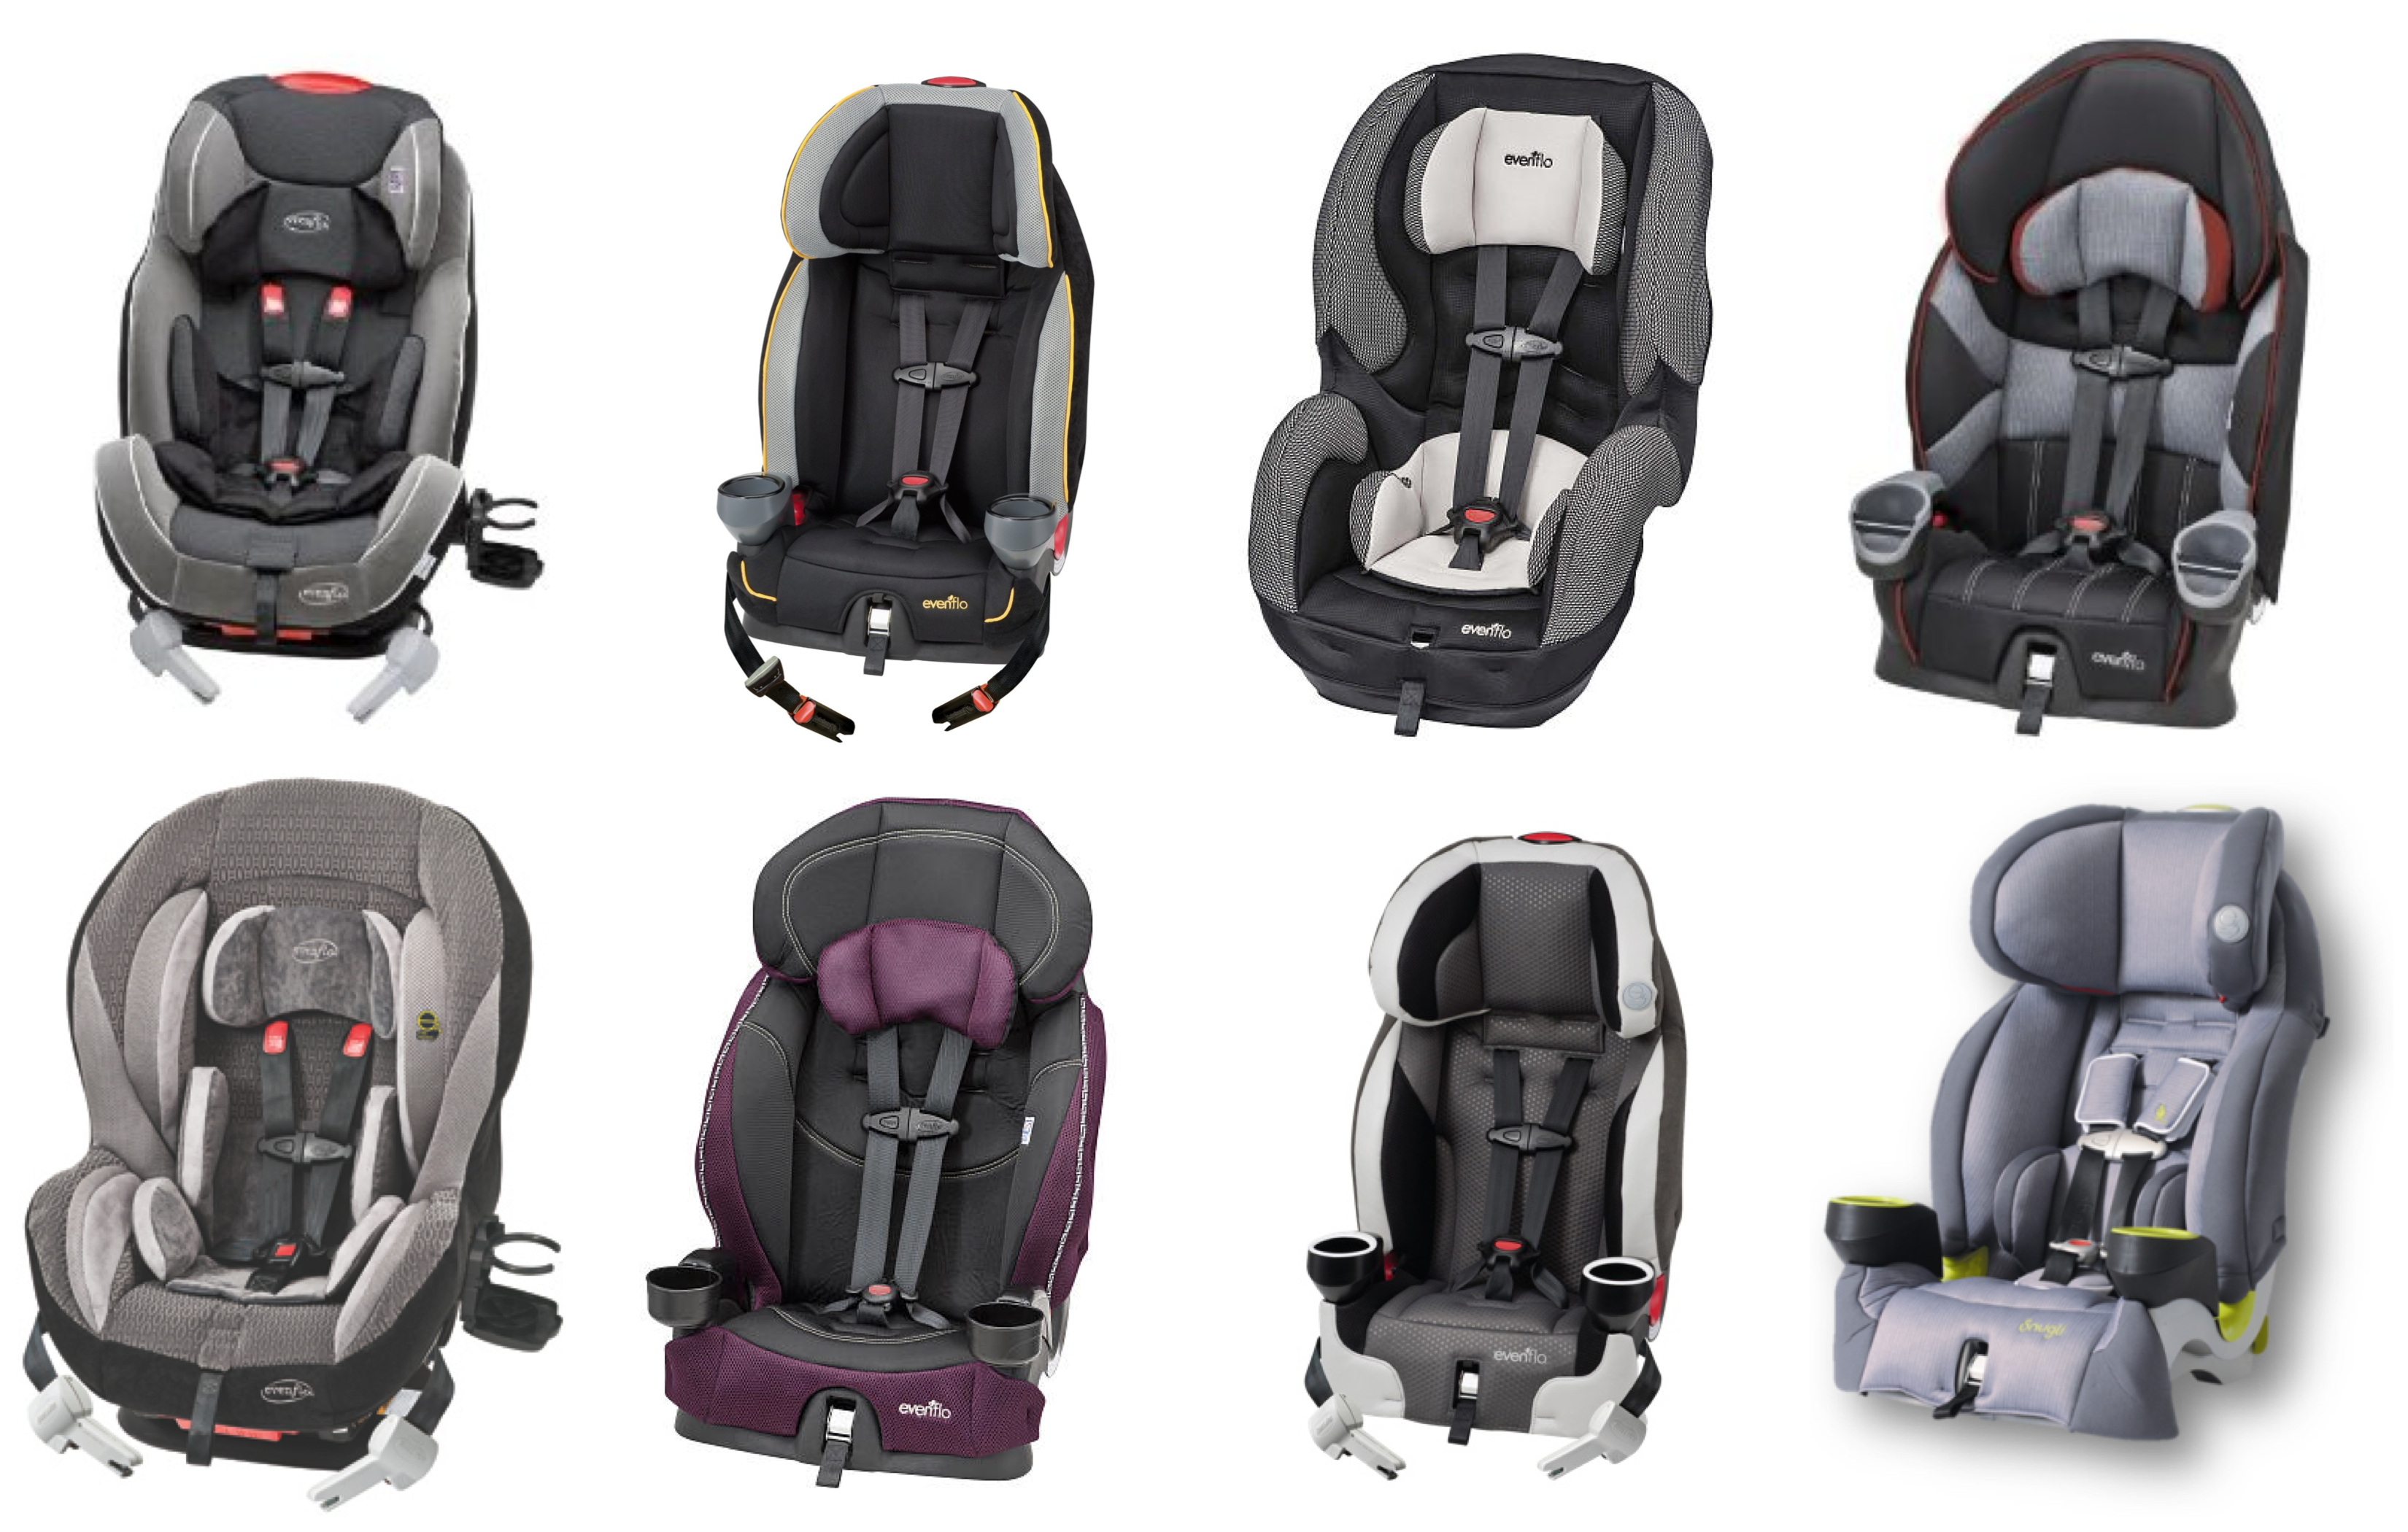 Evenflo car seat Recall - Growing Your Baby